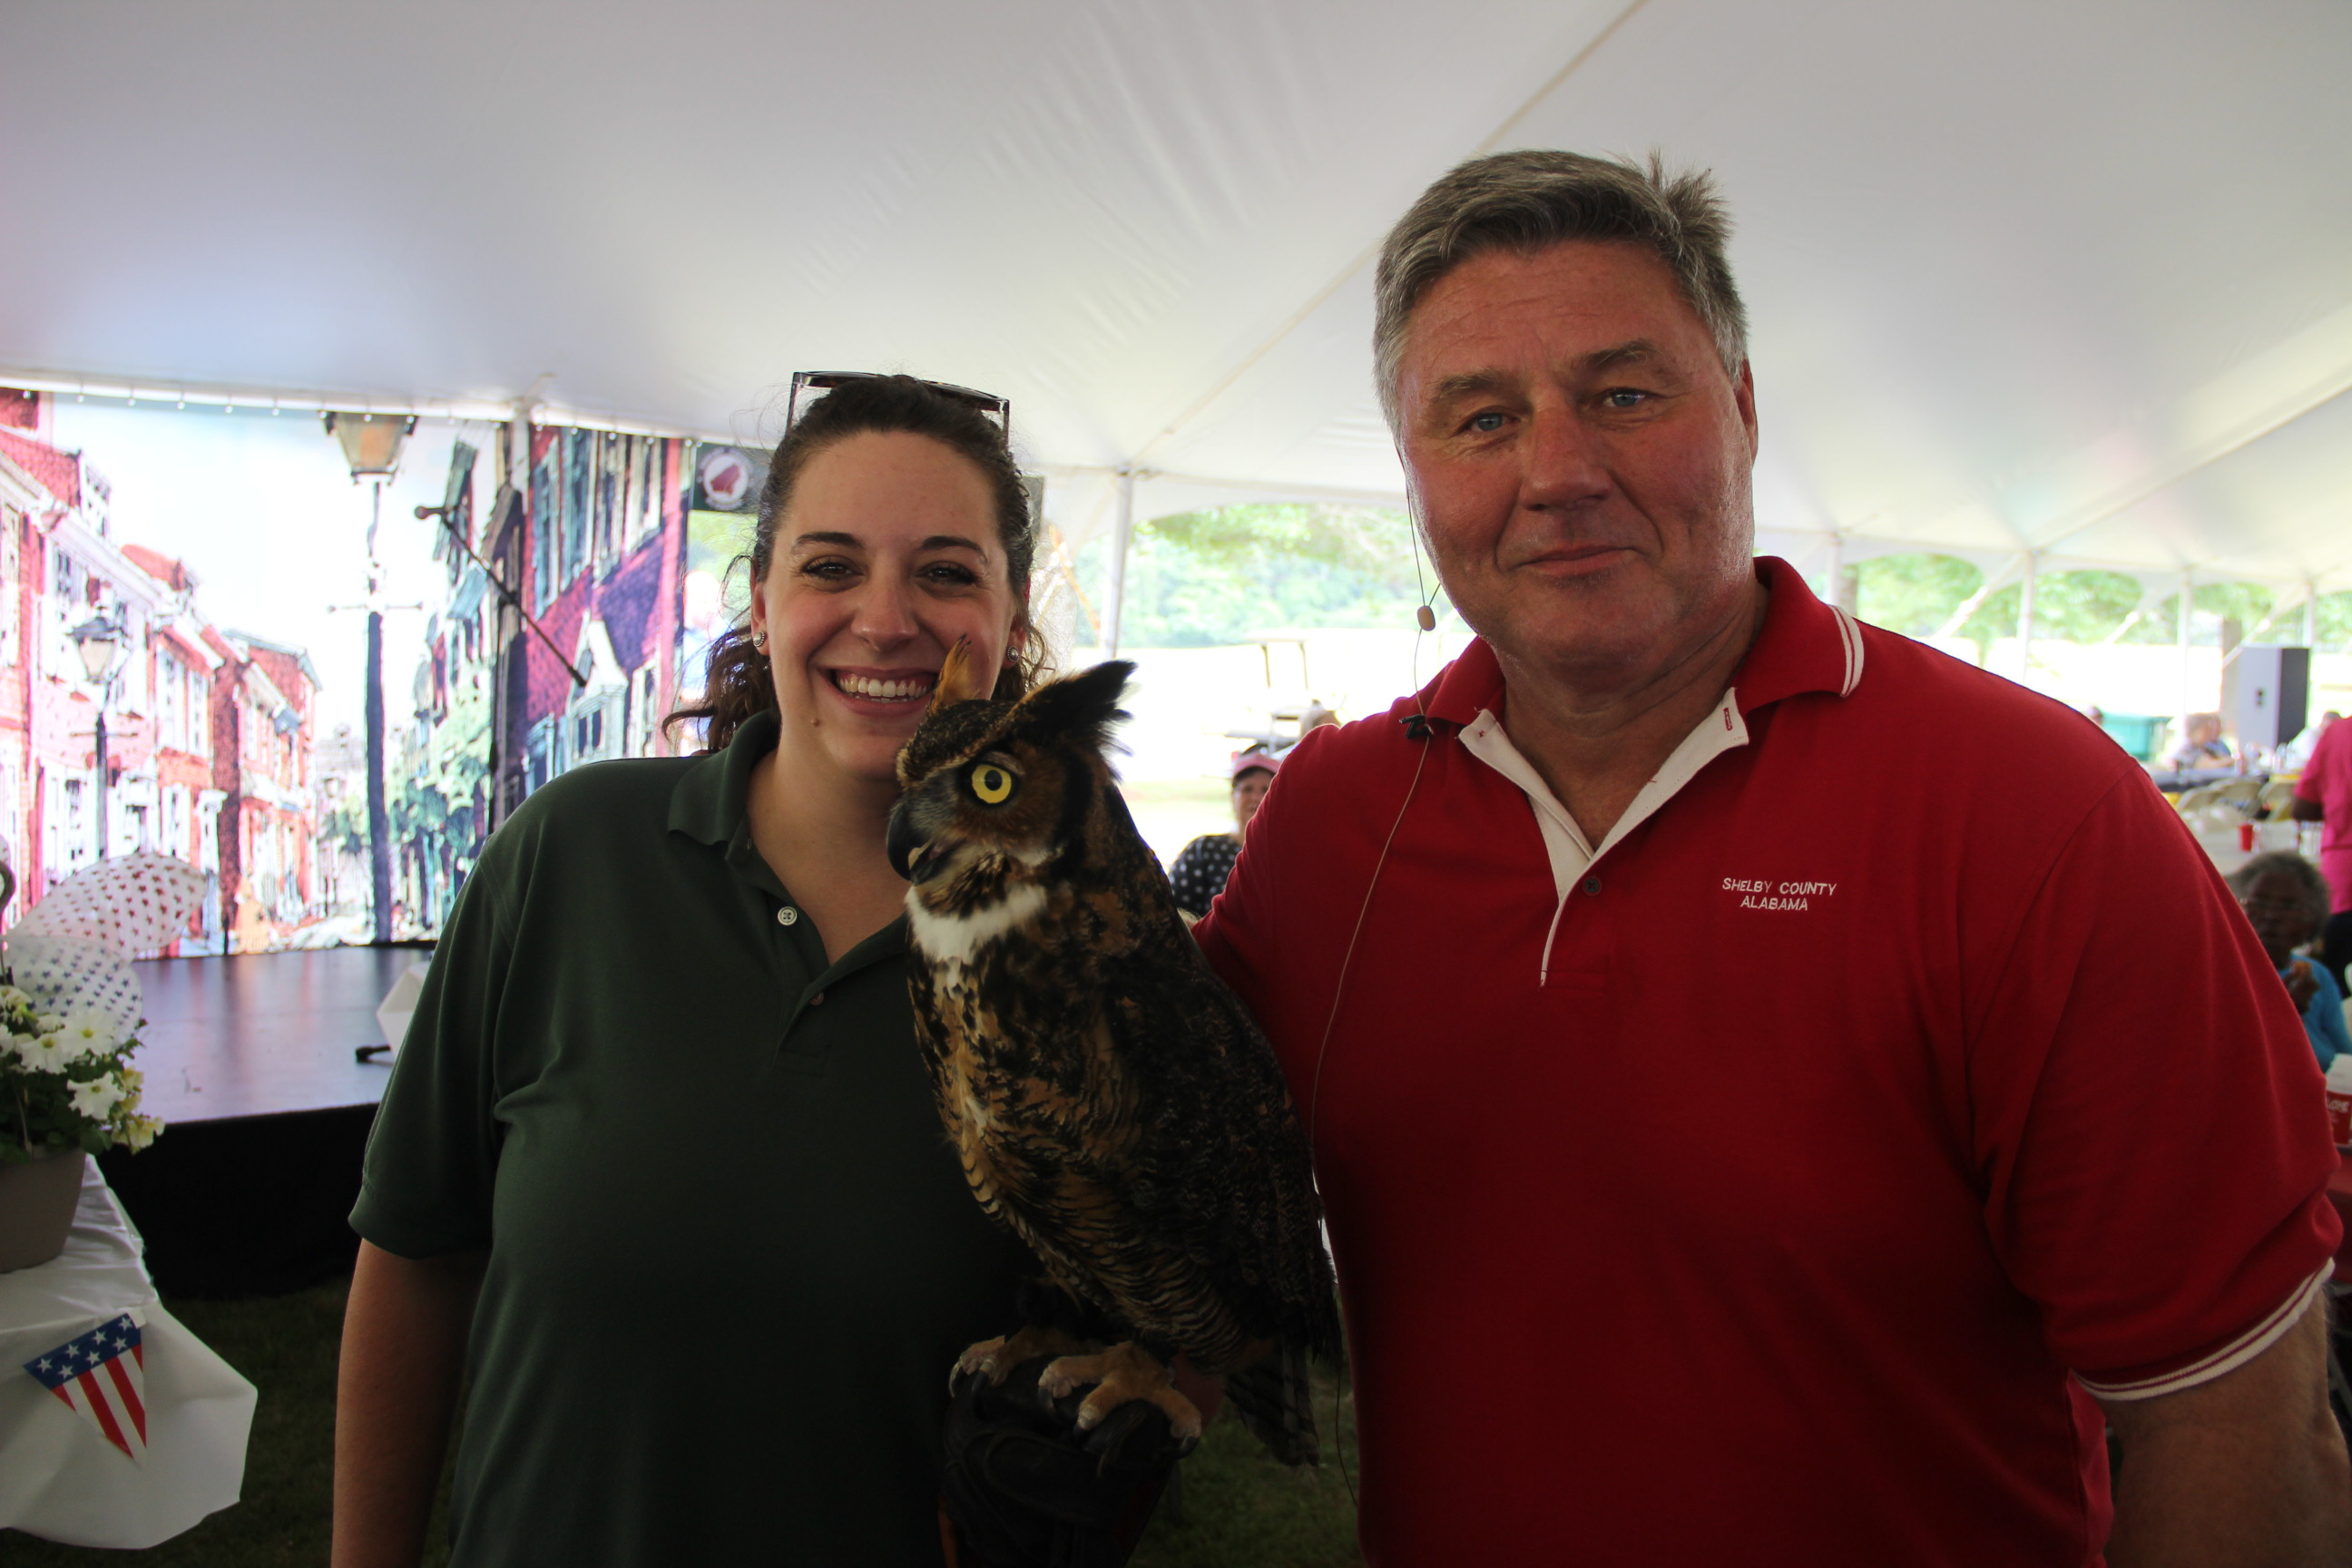 Image of the county manager with owl and trainer